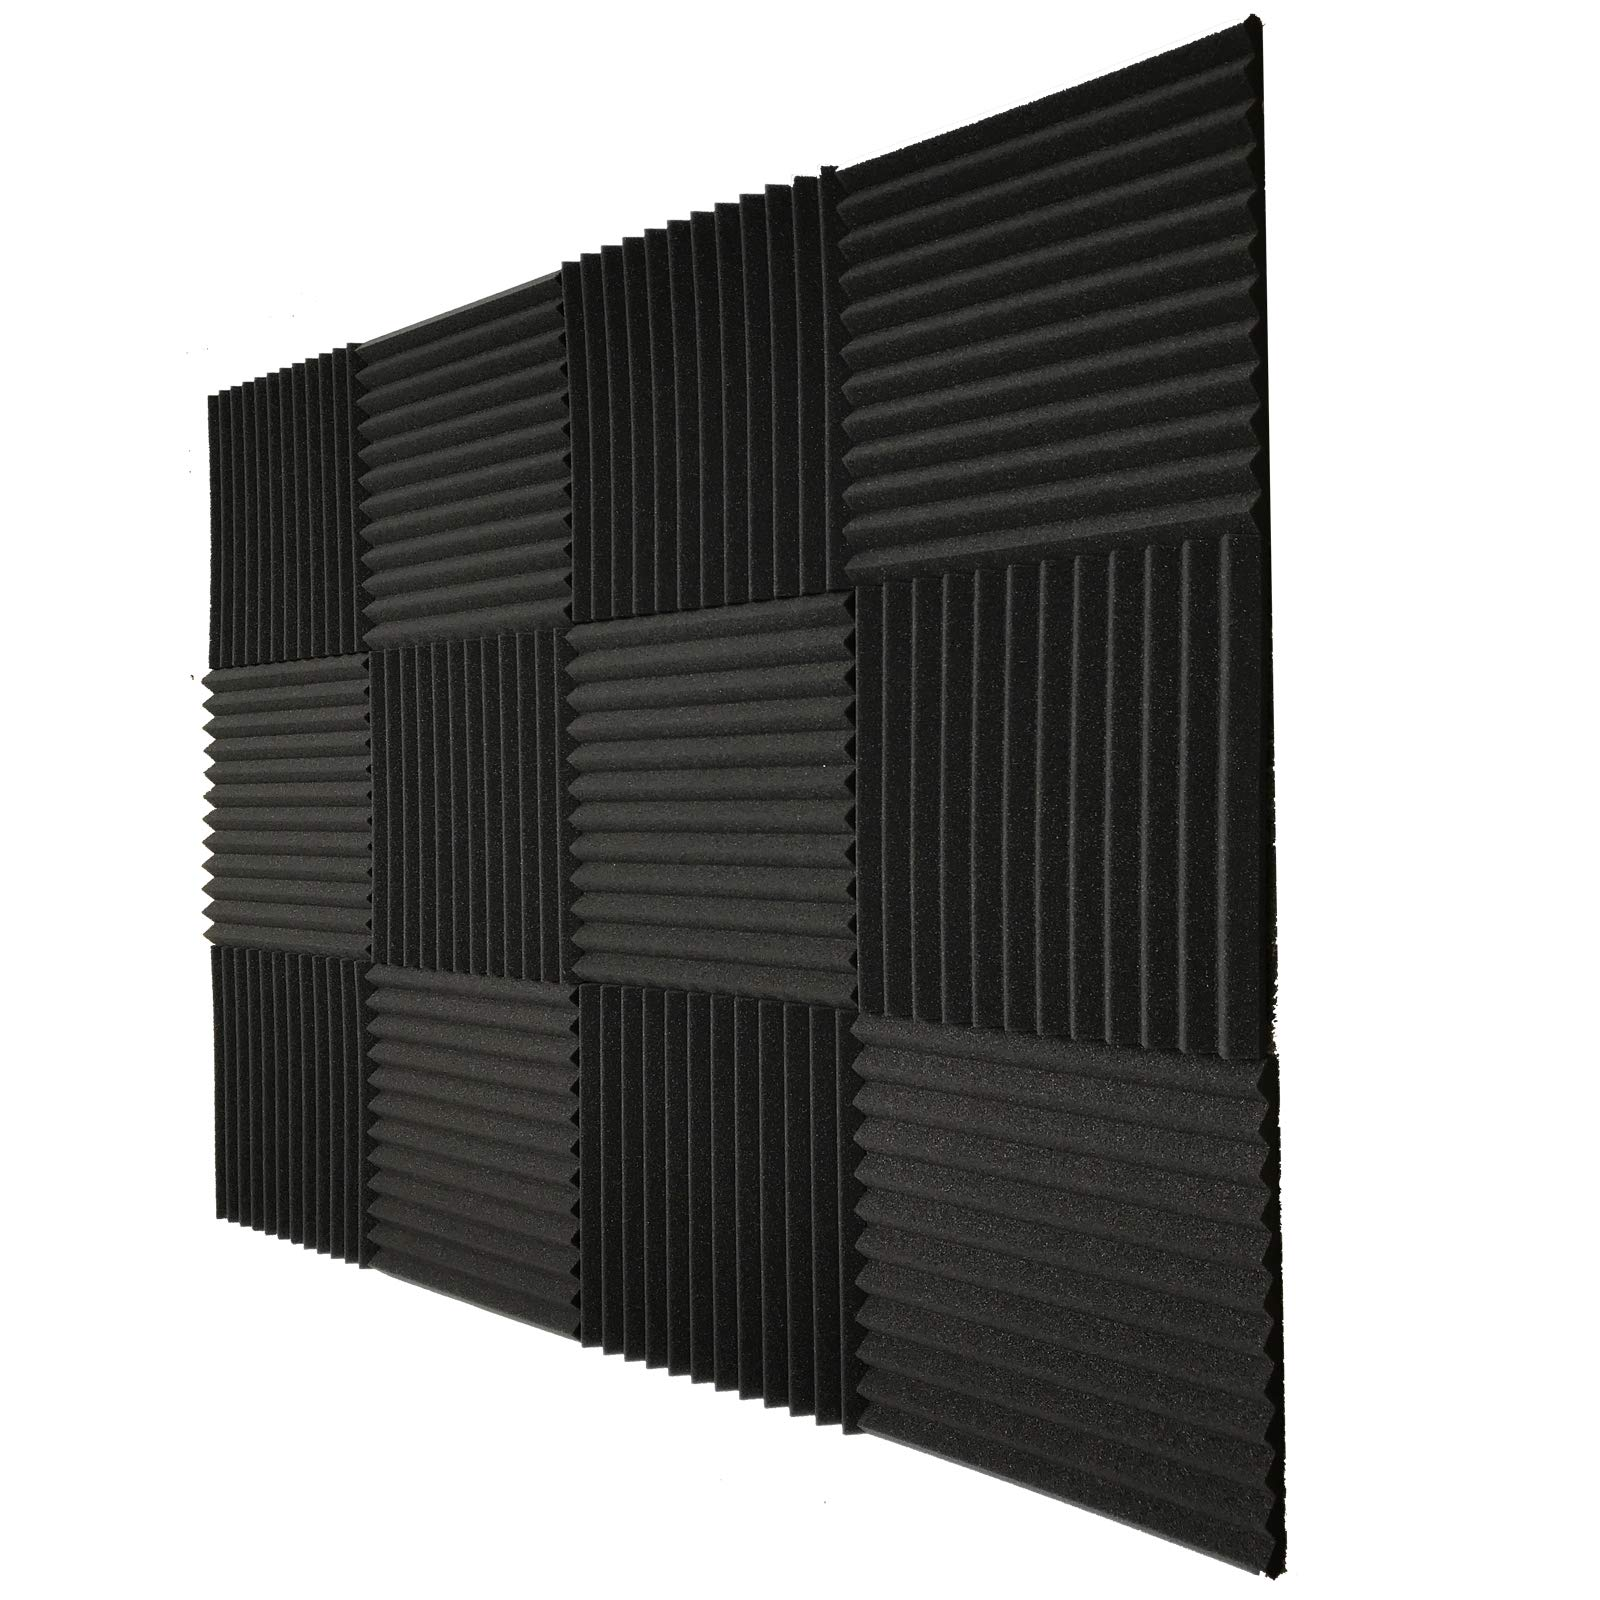 Teraves Acoustic Foam Panels -36 Pack Soundproofing Studio Foam Wedges Padding Wall Tiles 1'' X 12'' X 12''